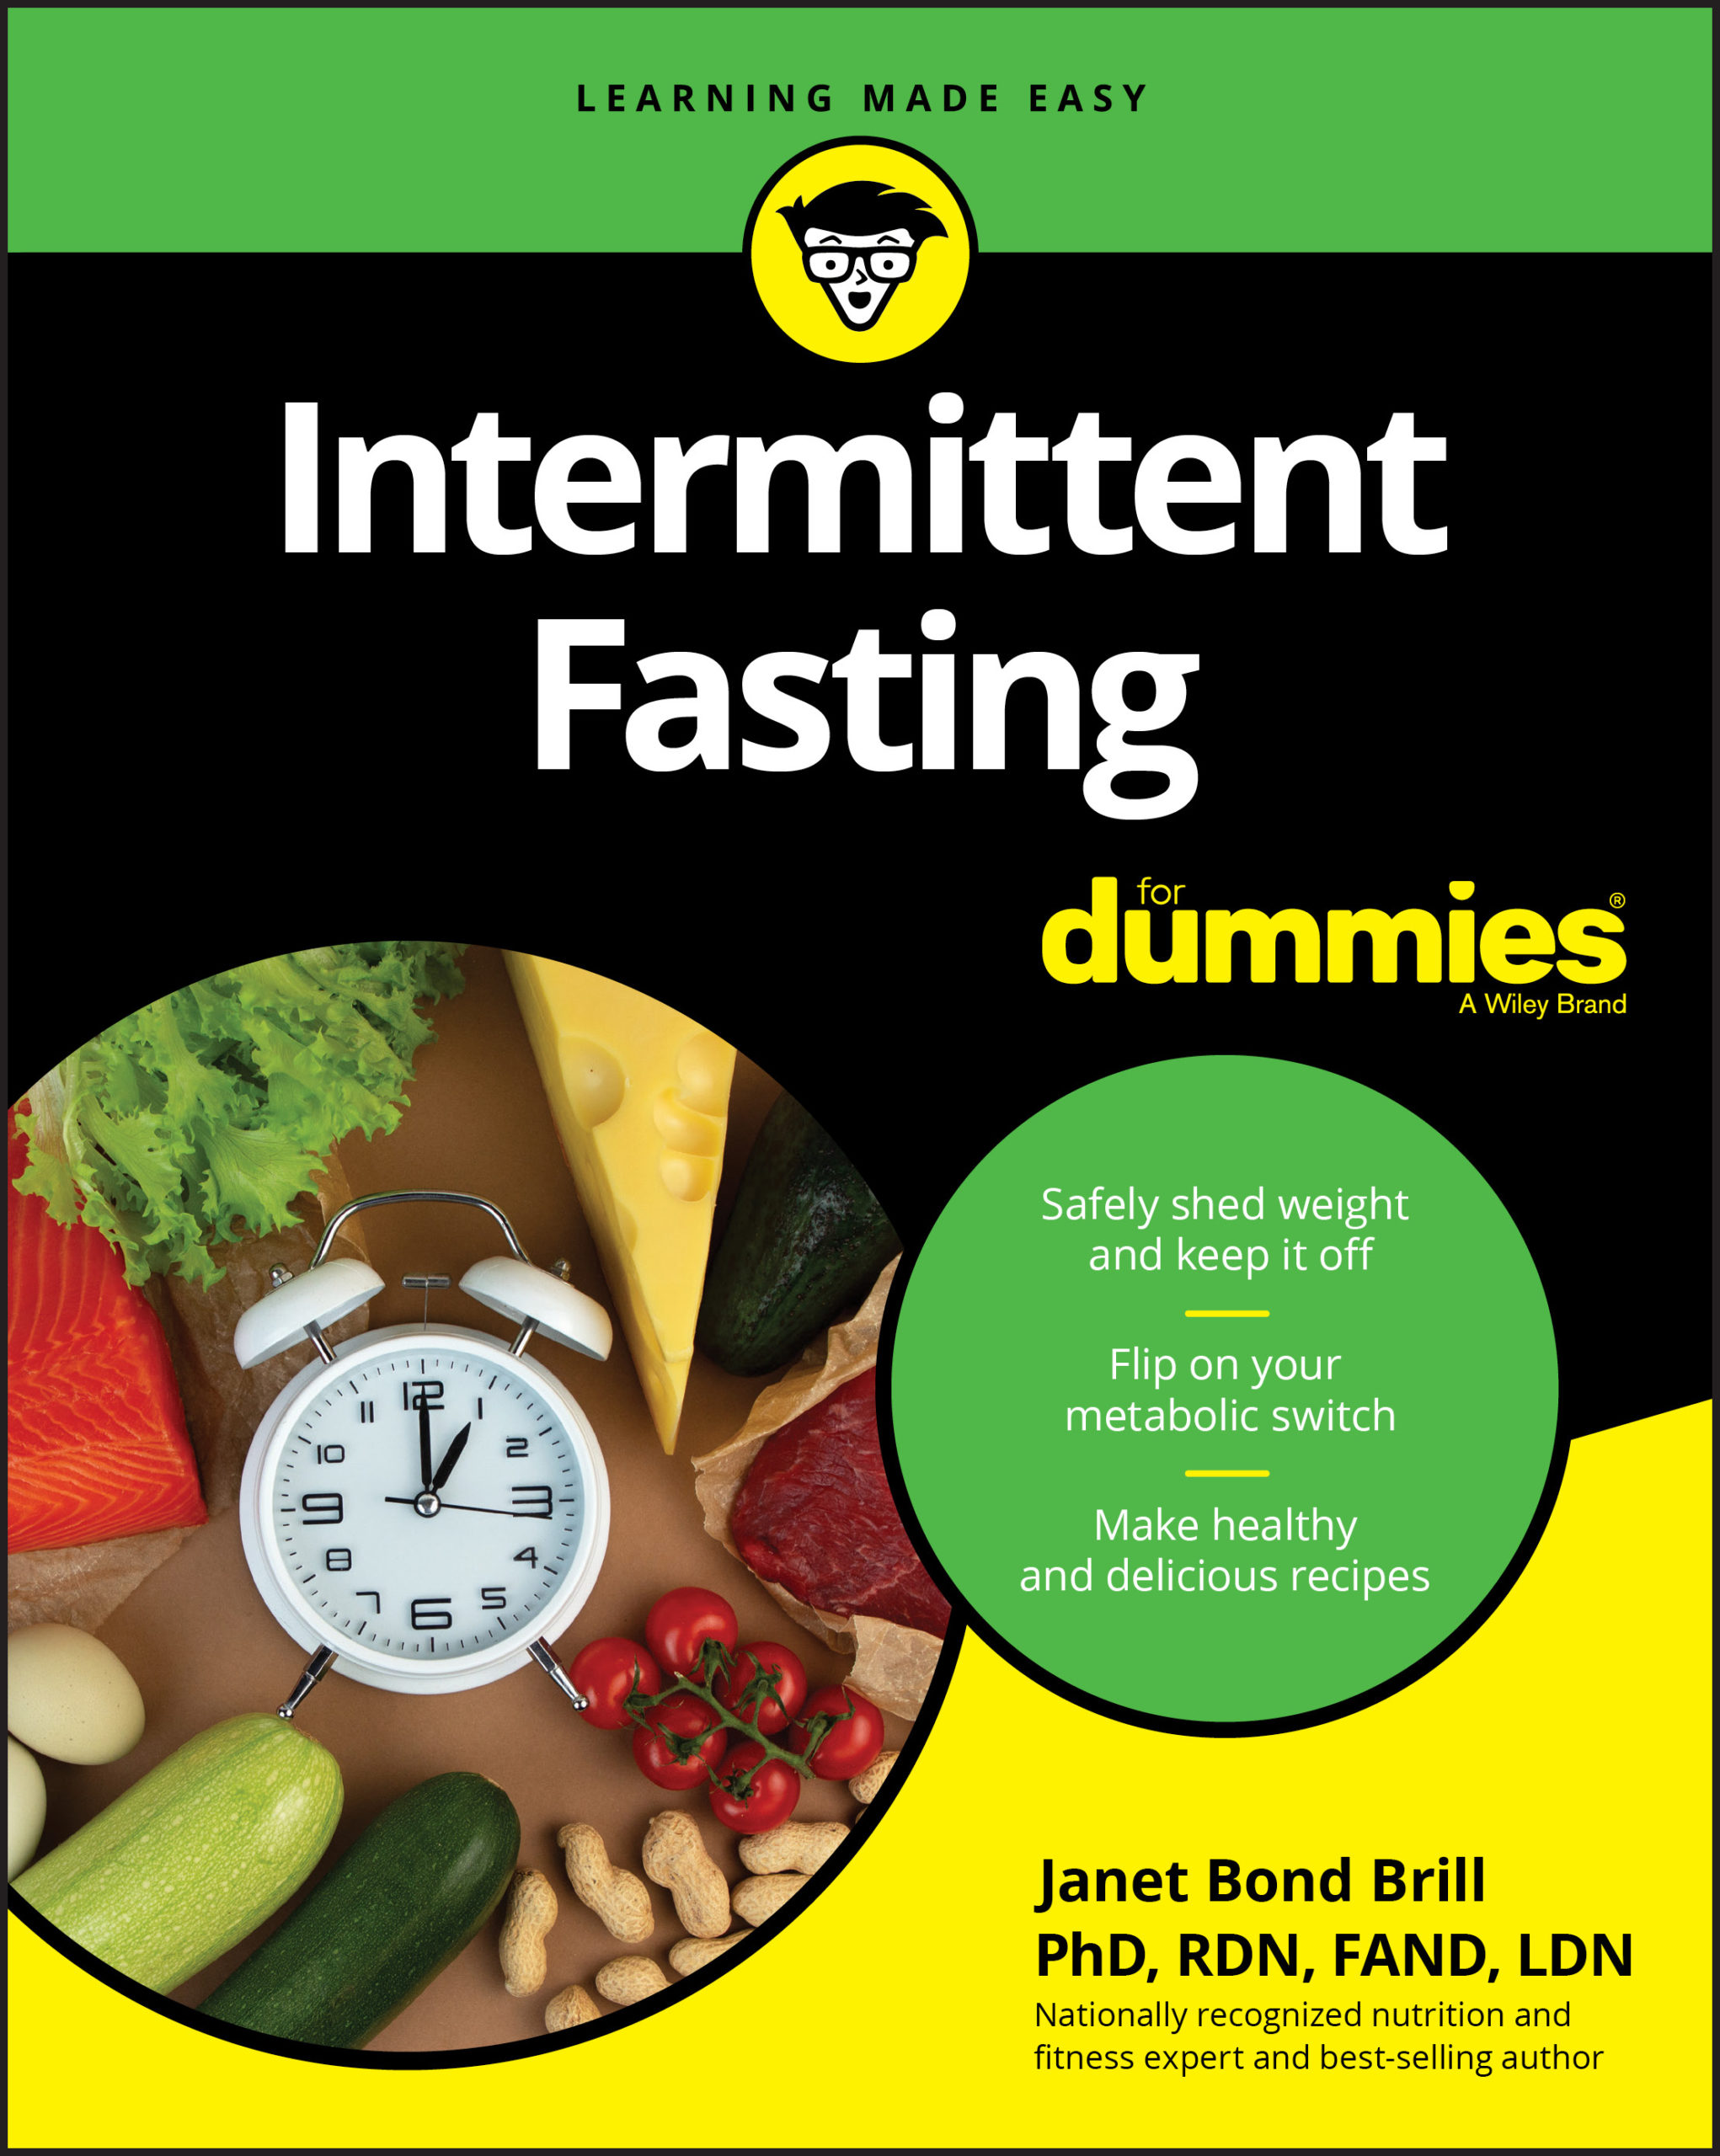 Not a Diet! Intermittent Fasting Is a Lifestyle